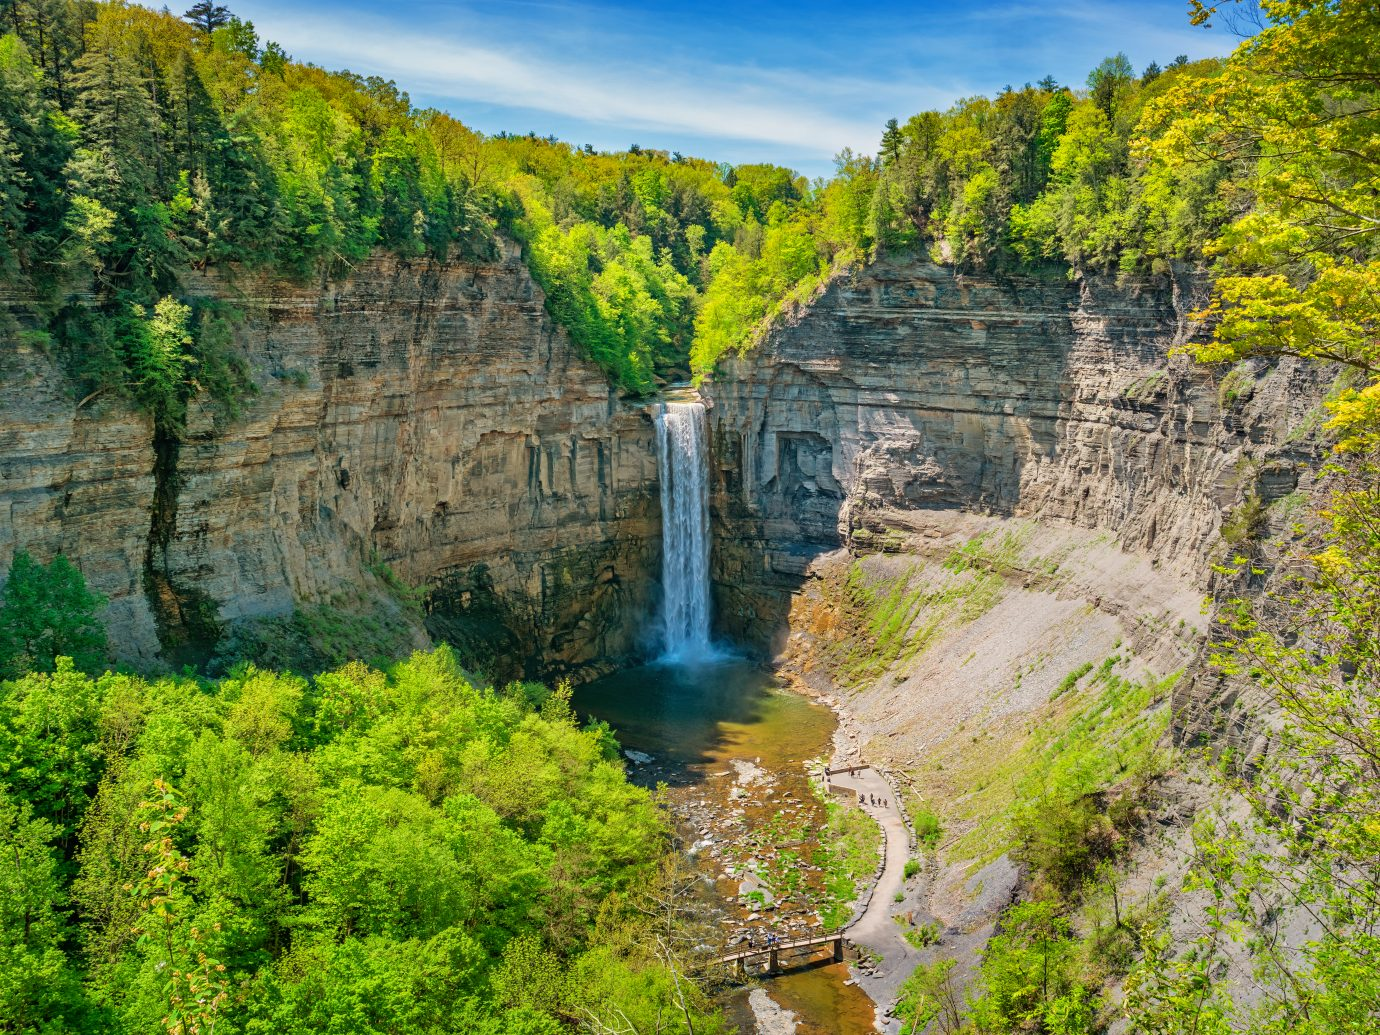 Taughannock Falls State Park near Ithaca New York, USA on a sunny day.